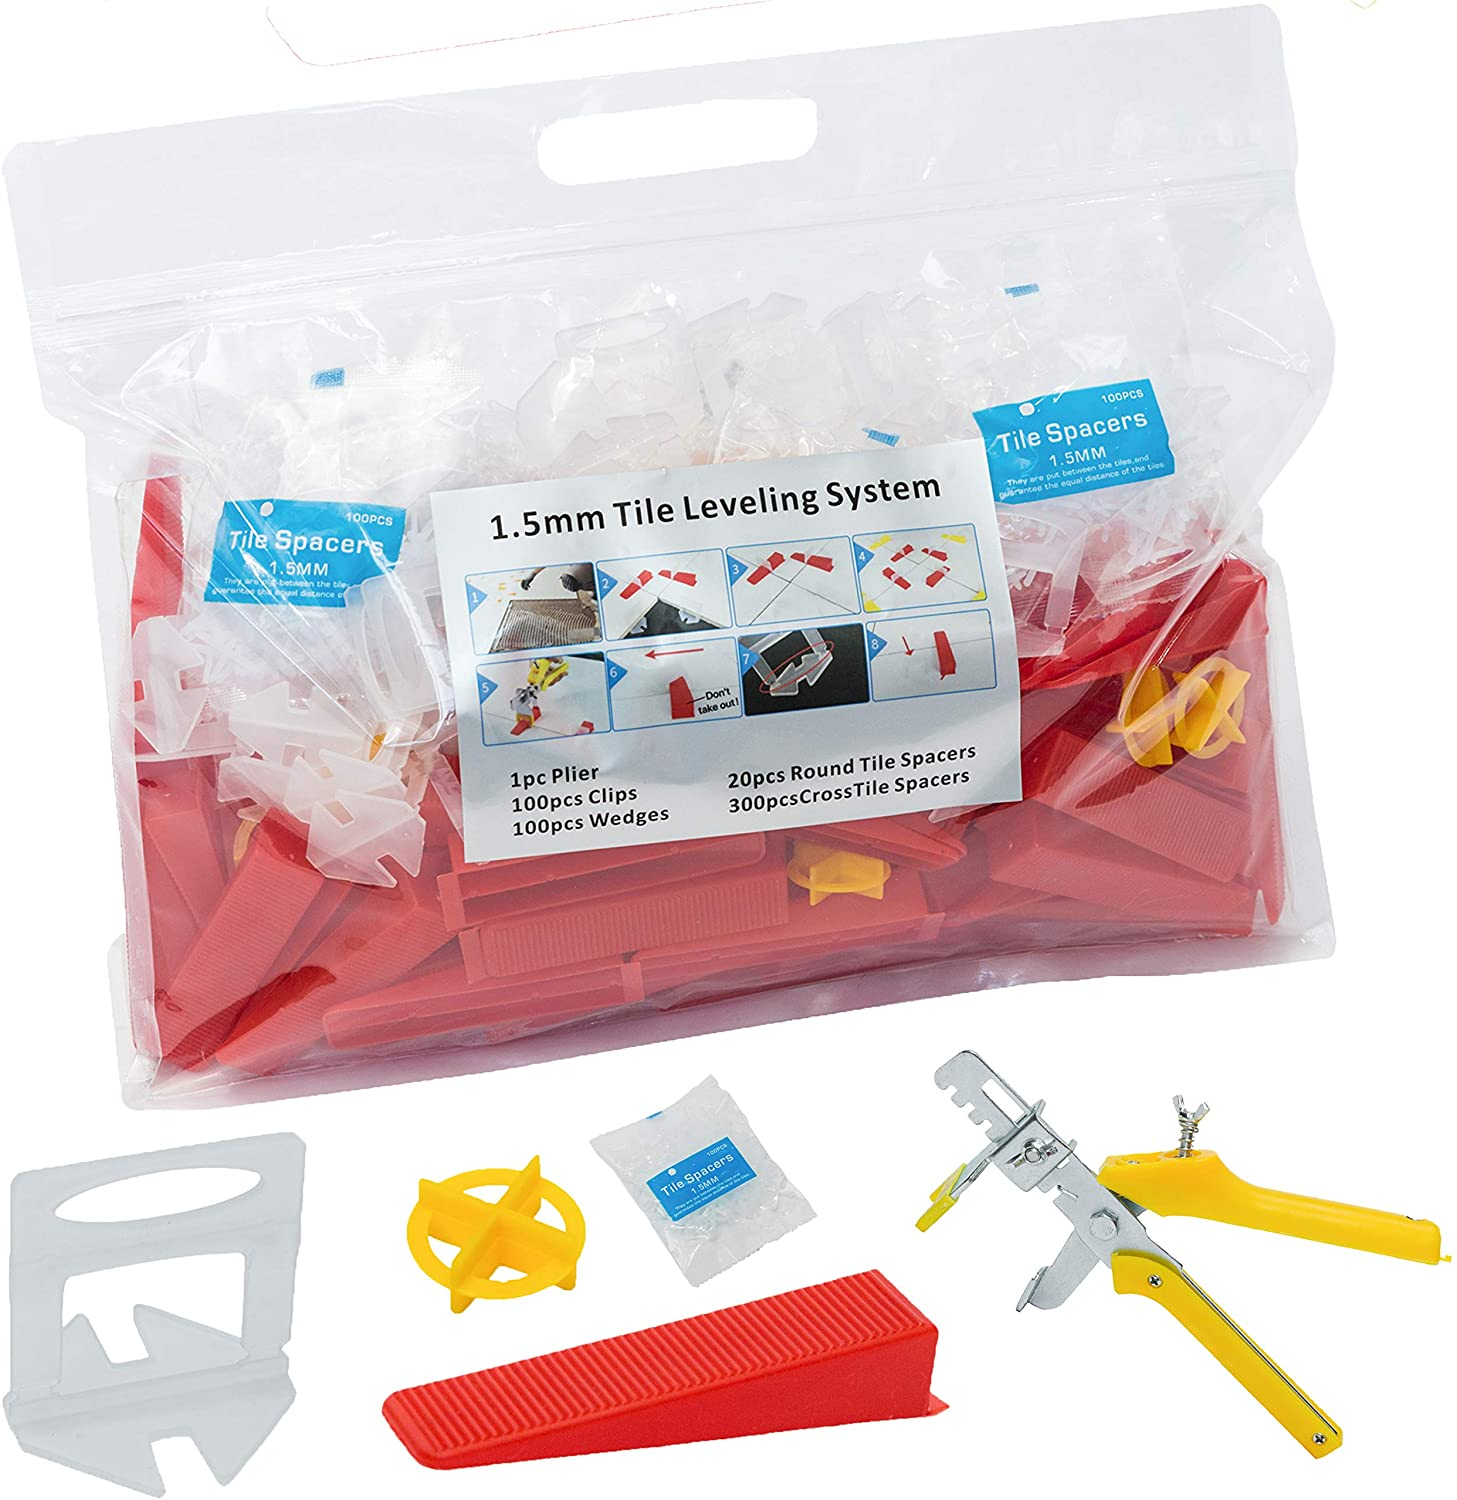 Tile Leveling System with Stronger 100 Tile Spacers Clips & 100 Reusable Wedges & 1 pc Floor Tiles Plier for Floor Leveling, DIY Tile Kits, Wall Tile Leveler Tools for Tile Installation(1/16 inch)